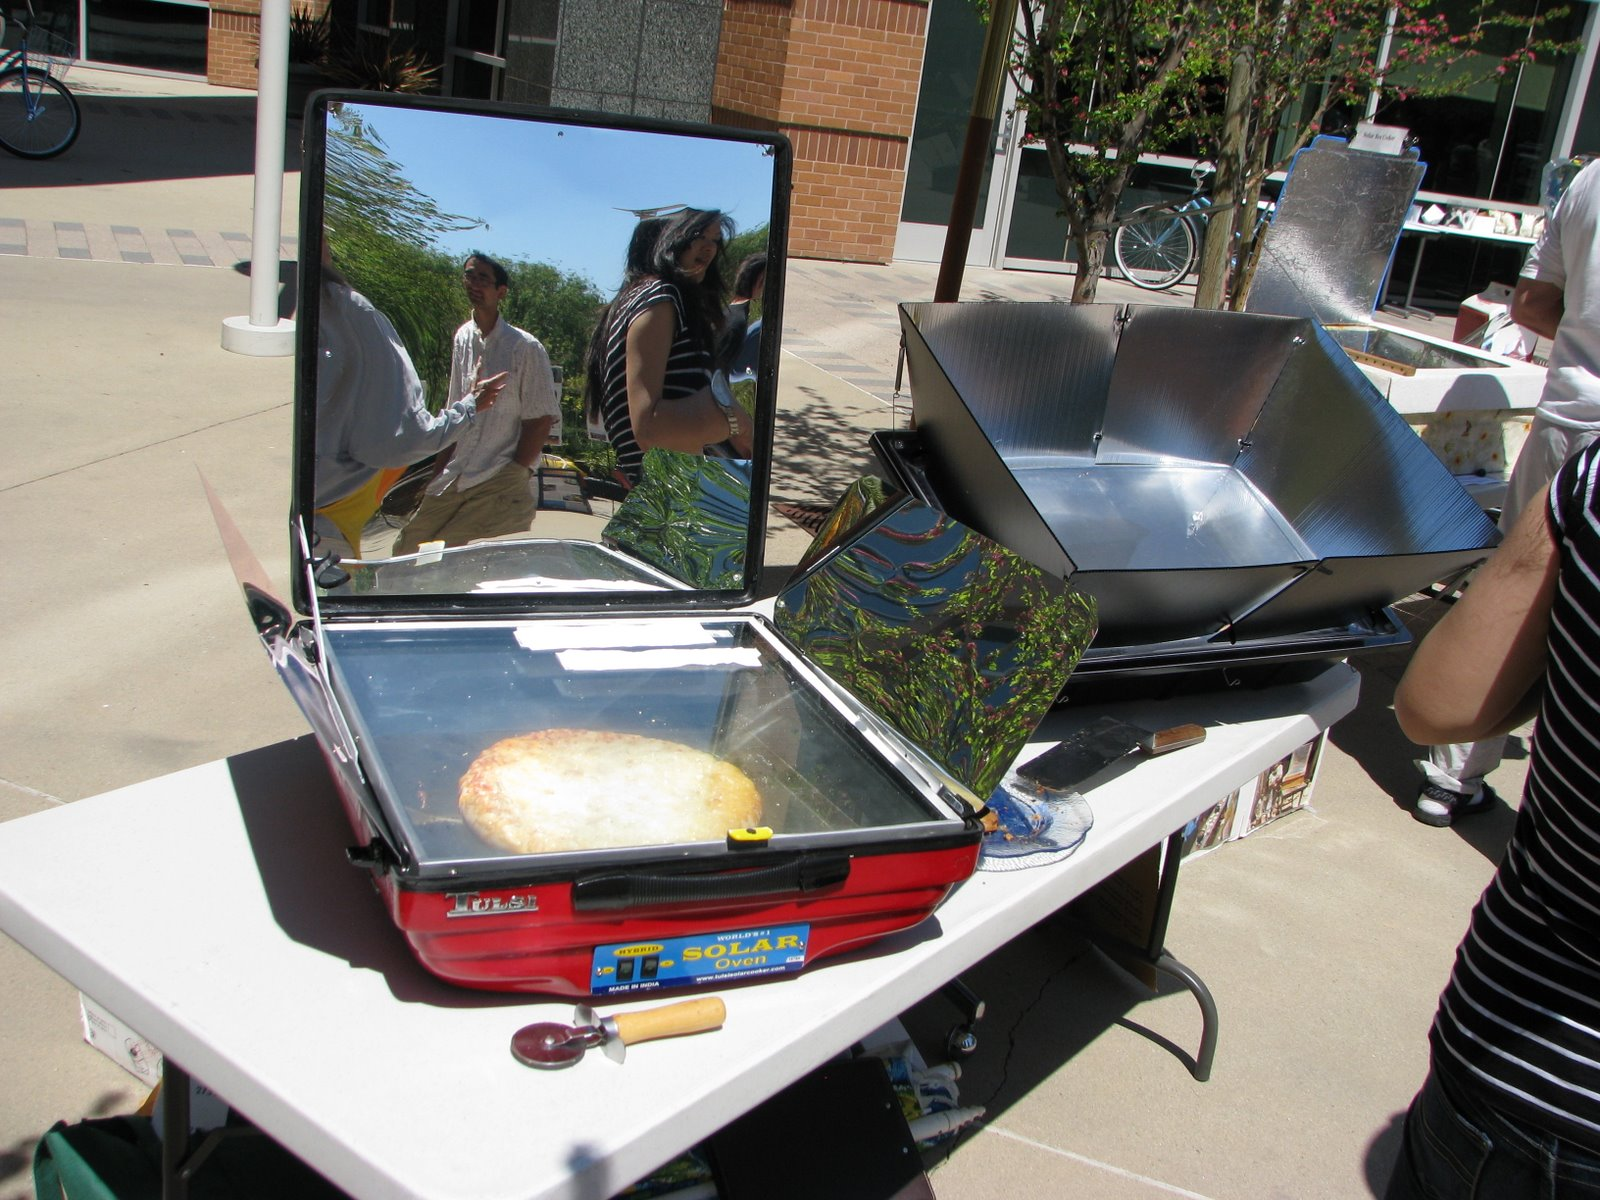 Hybrid solar oven can cook on cloudy days or at night 1